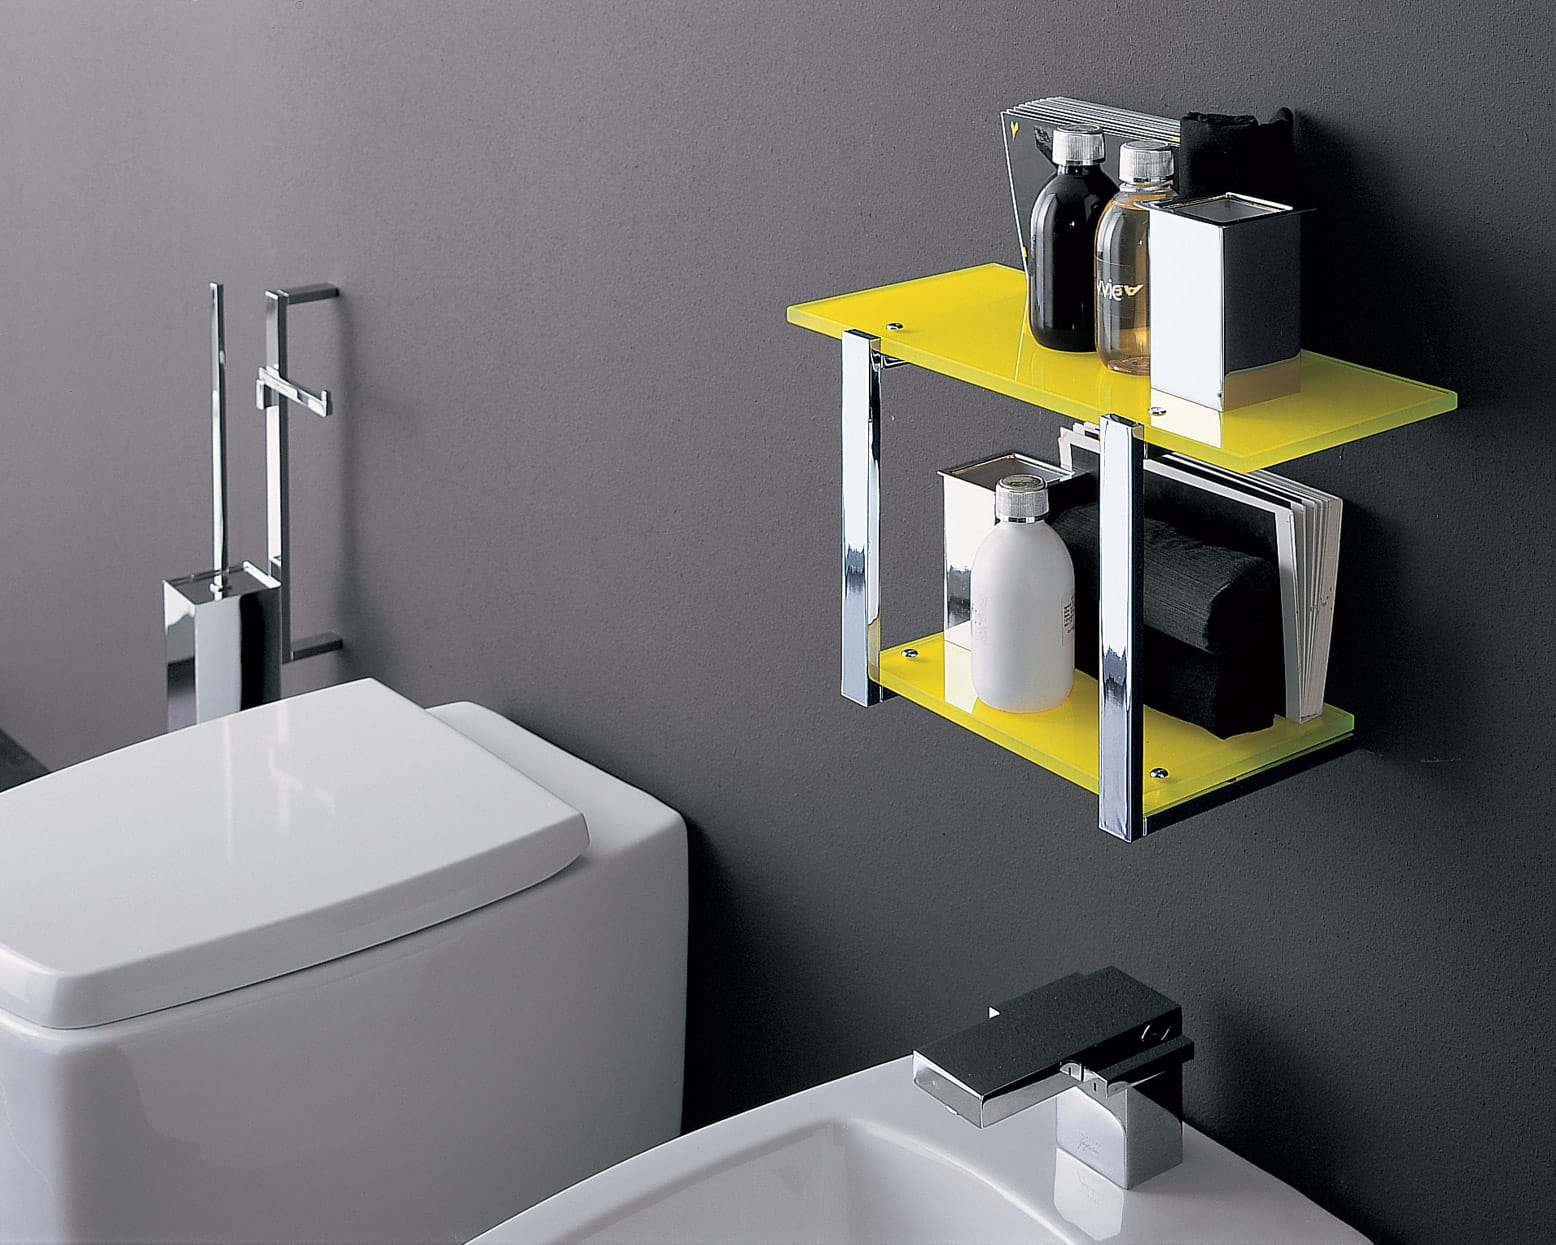 Accessori bagno edilcomponenti srl carrara la spezia for Accessori per bagno